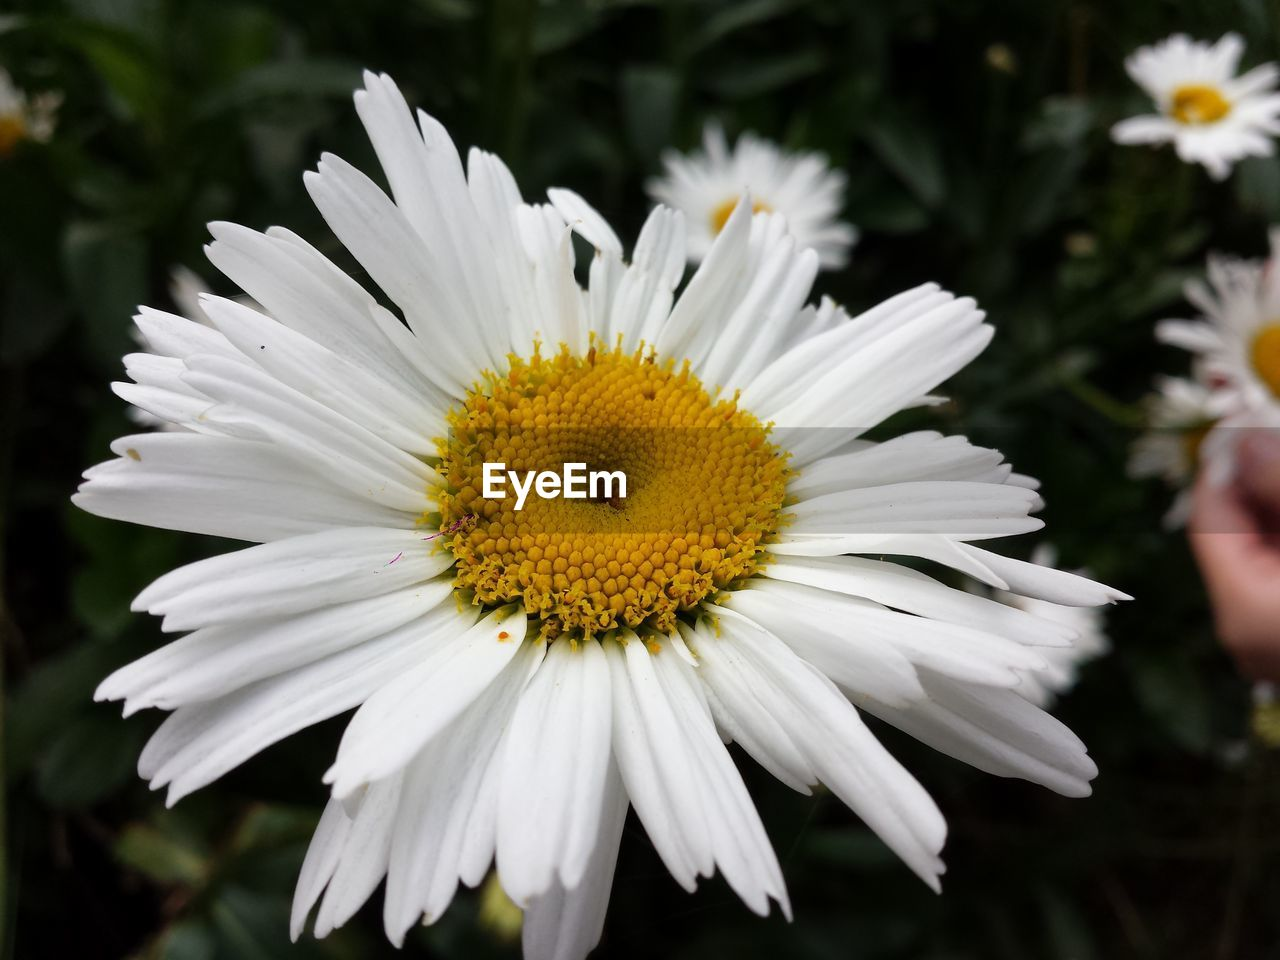 flower, petal, fragility, white color, nature, flower head, growth, beauty in nature, freshness, pollen, no people, close-up, focus on foreground, outdoors, blooming, plant, yellow, day, animal themes